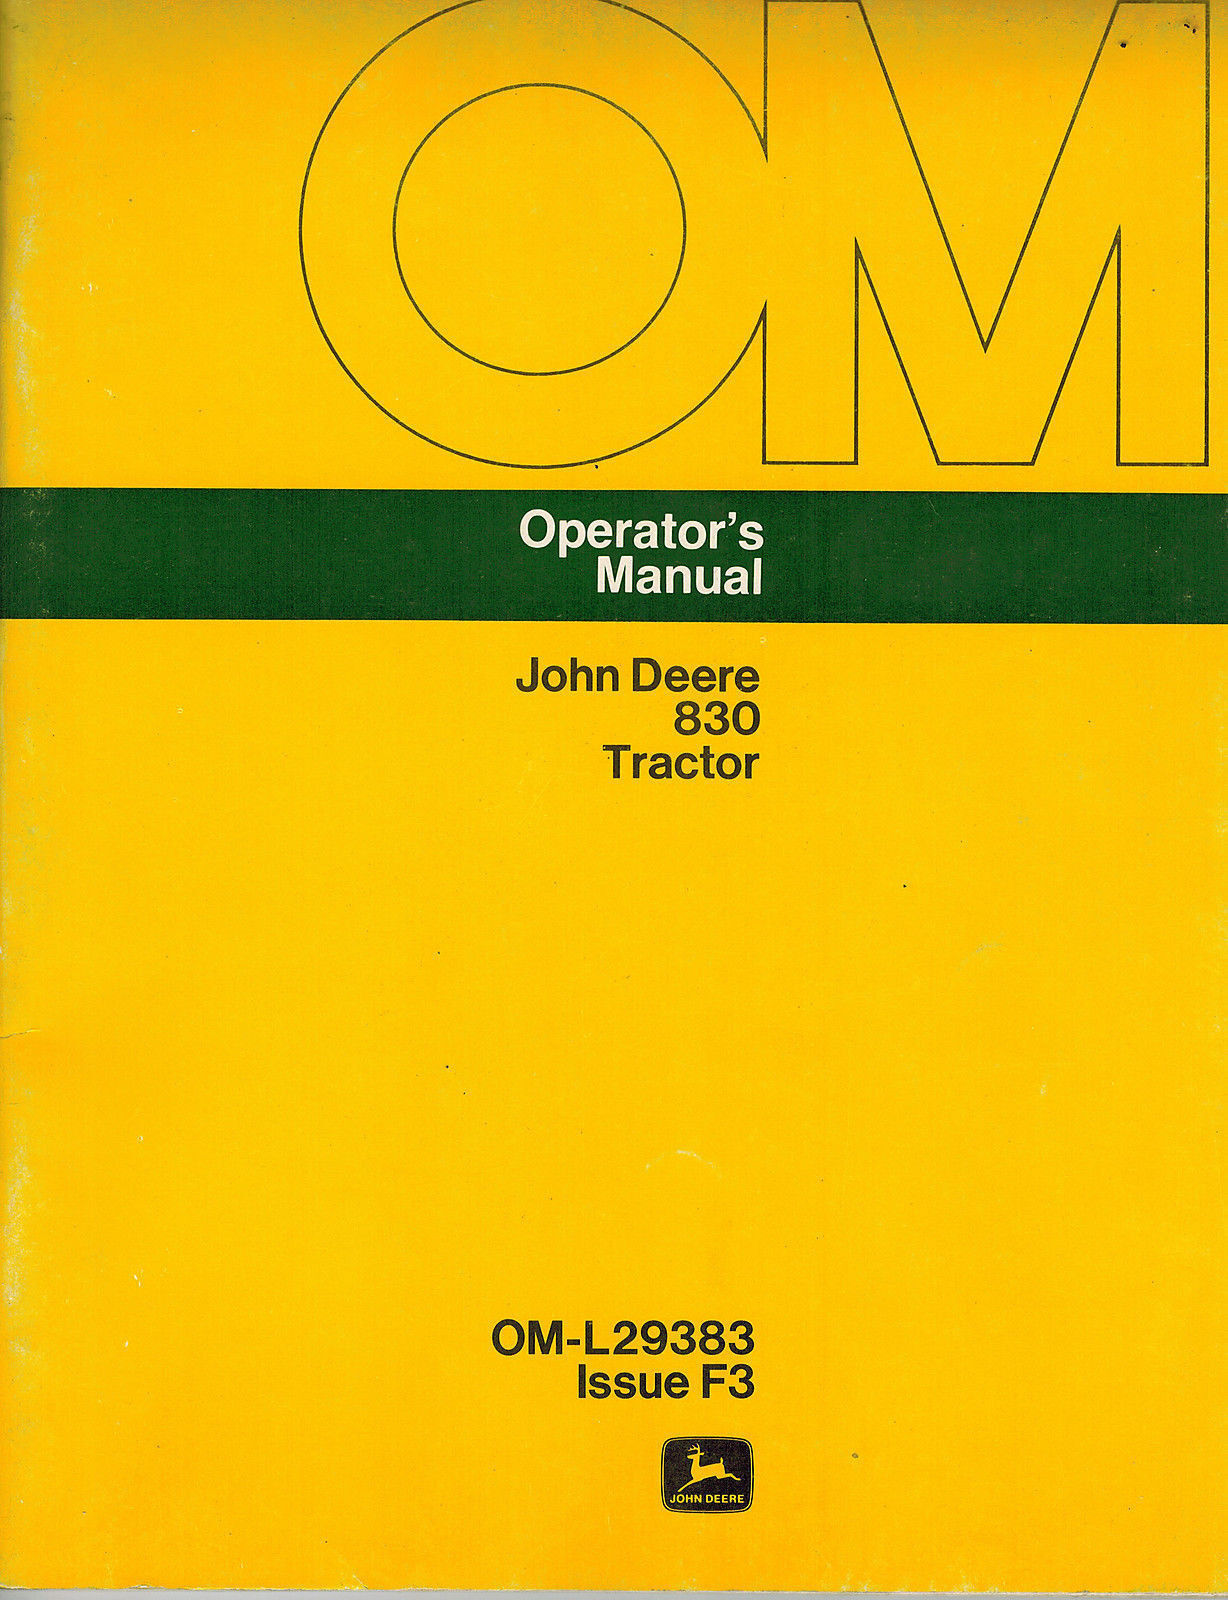 5209 New Idea Disc Mower Owners Manual Thislitlesite S Diary